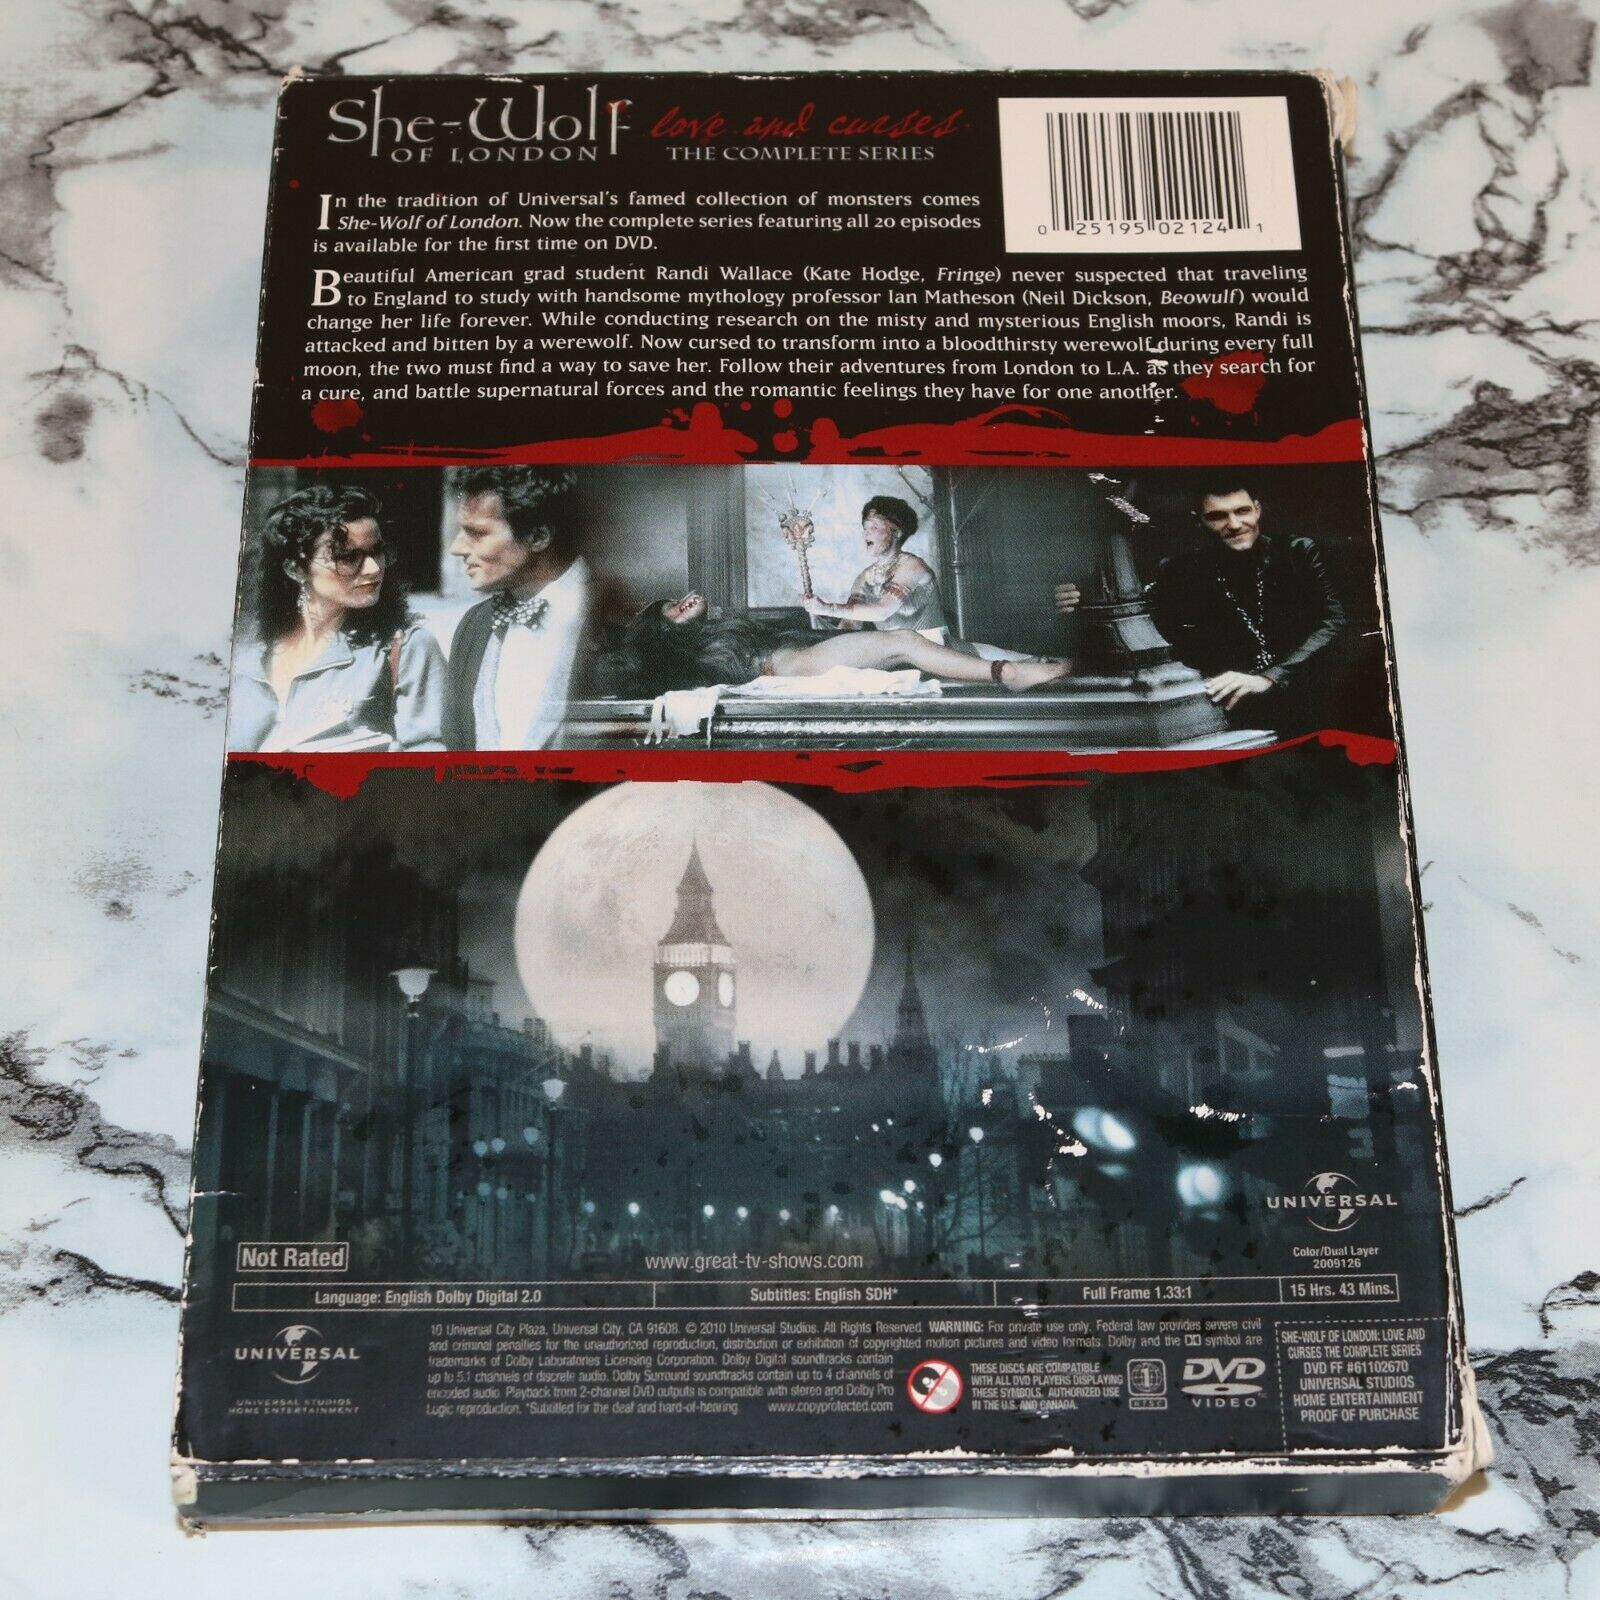 She-Wolf Of London - Love And Curses - The Complete Series 4-Disc DVD Set  - $12.68